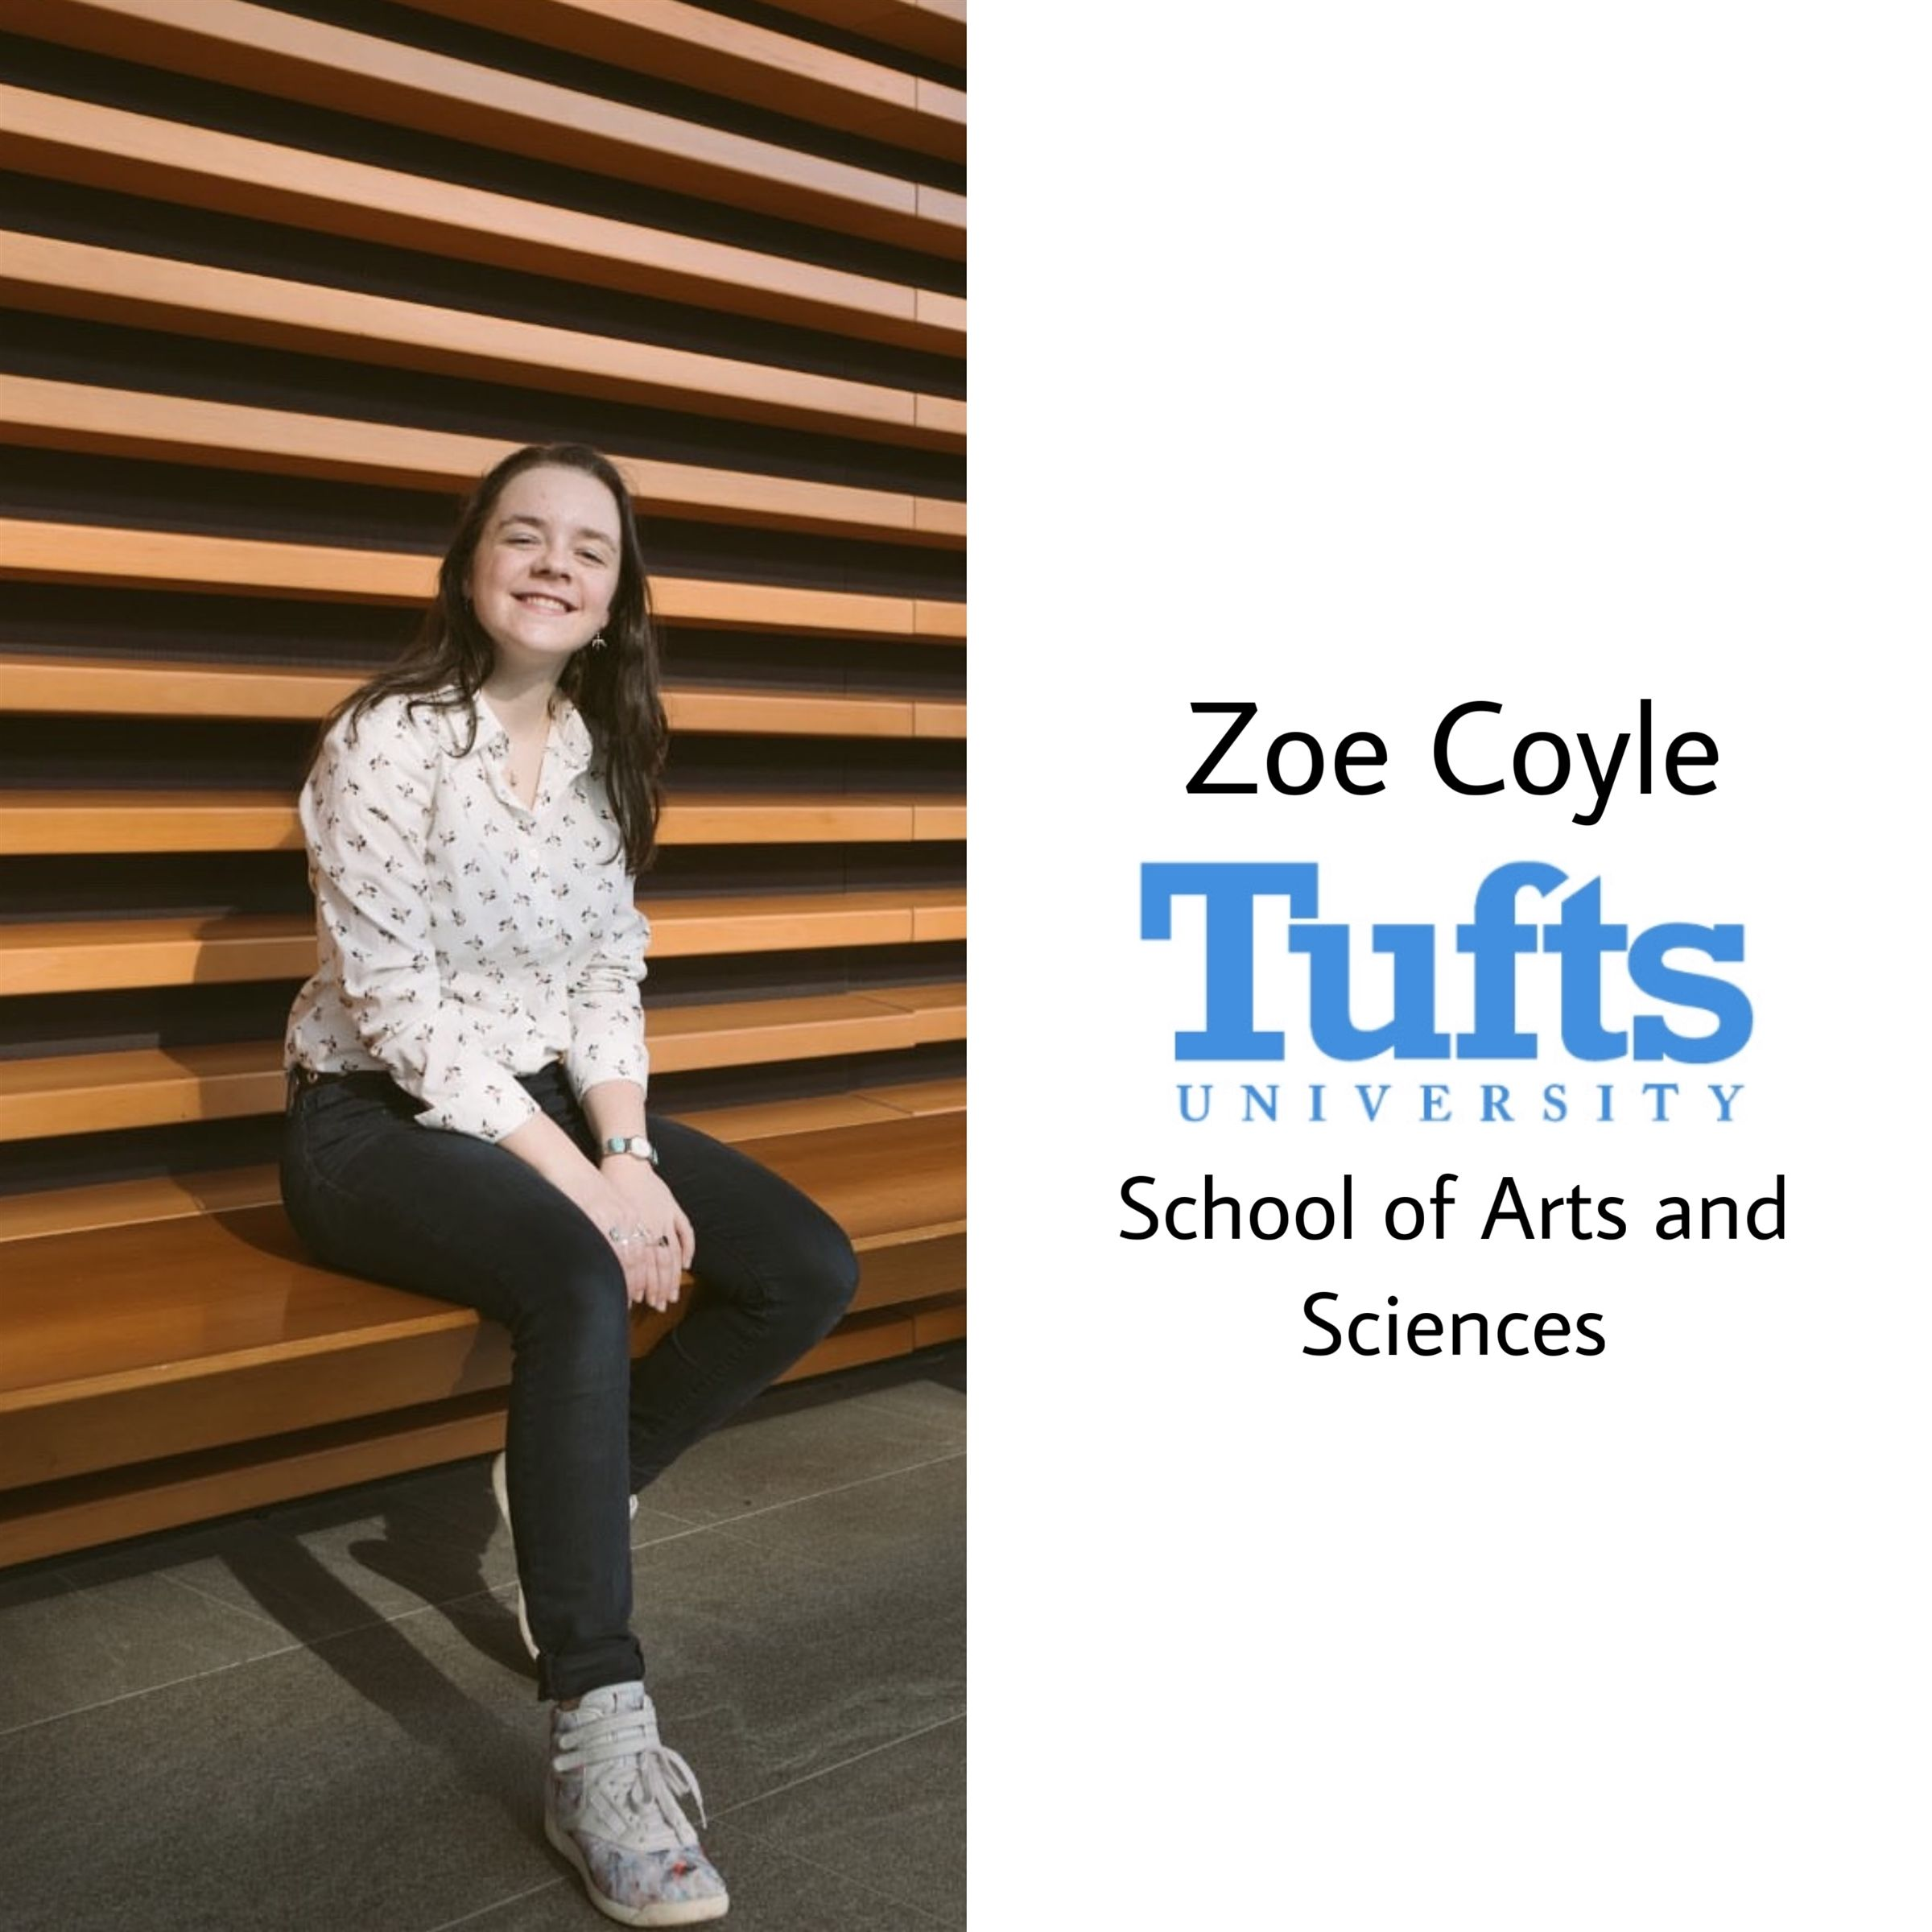 Congrats Zoe!! She will be at Tufts University next year in the School of Arts and Sciences!! So so proud, you're amazing!